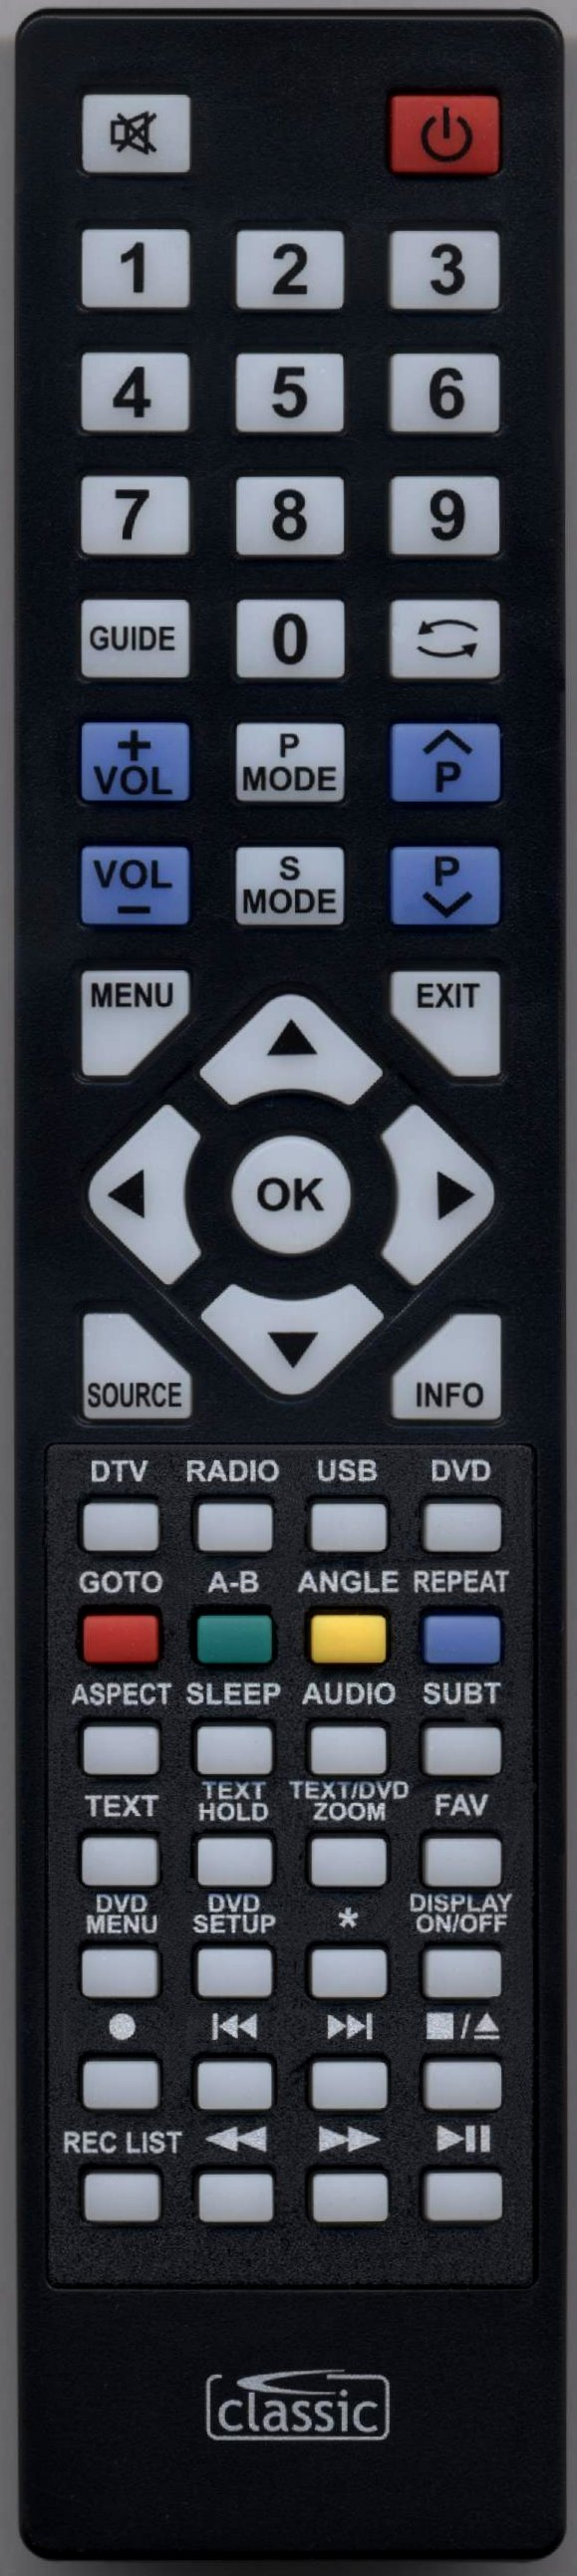 Blaupunkt 236207IGB3BFHKUPUK Remote Control Alternative